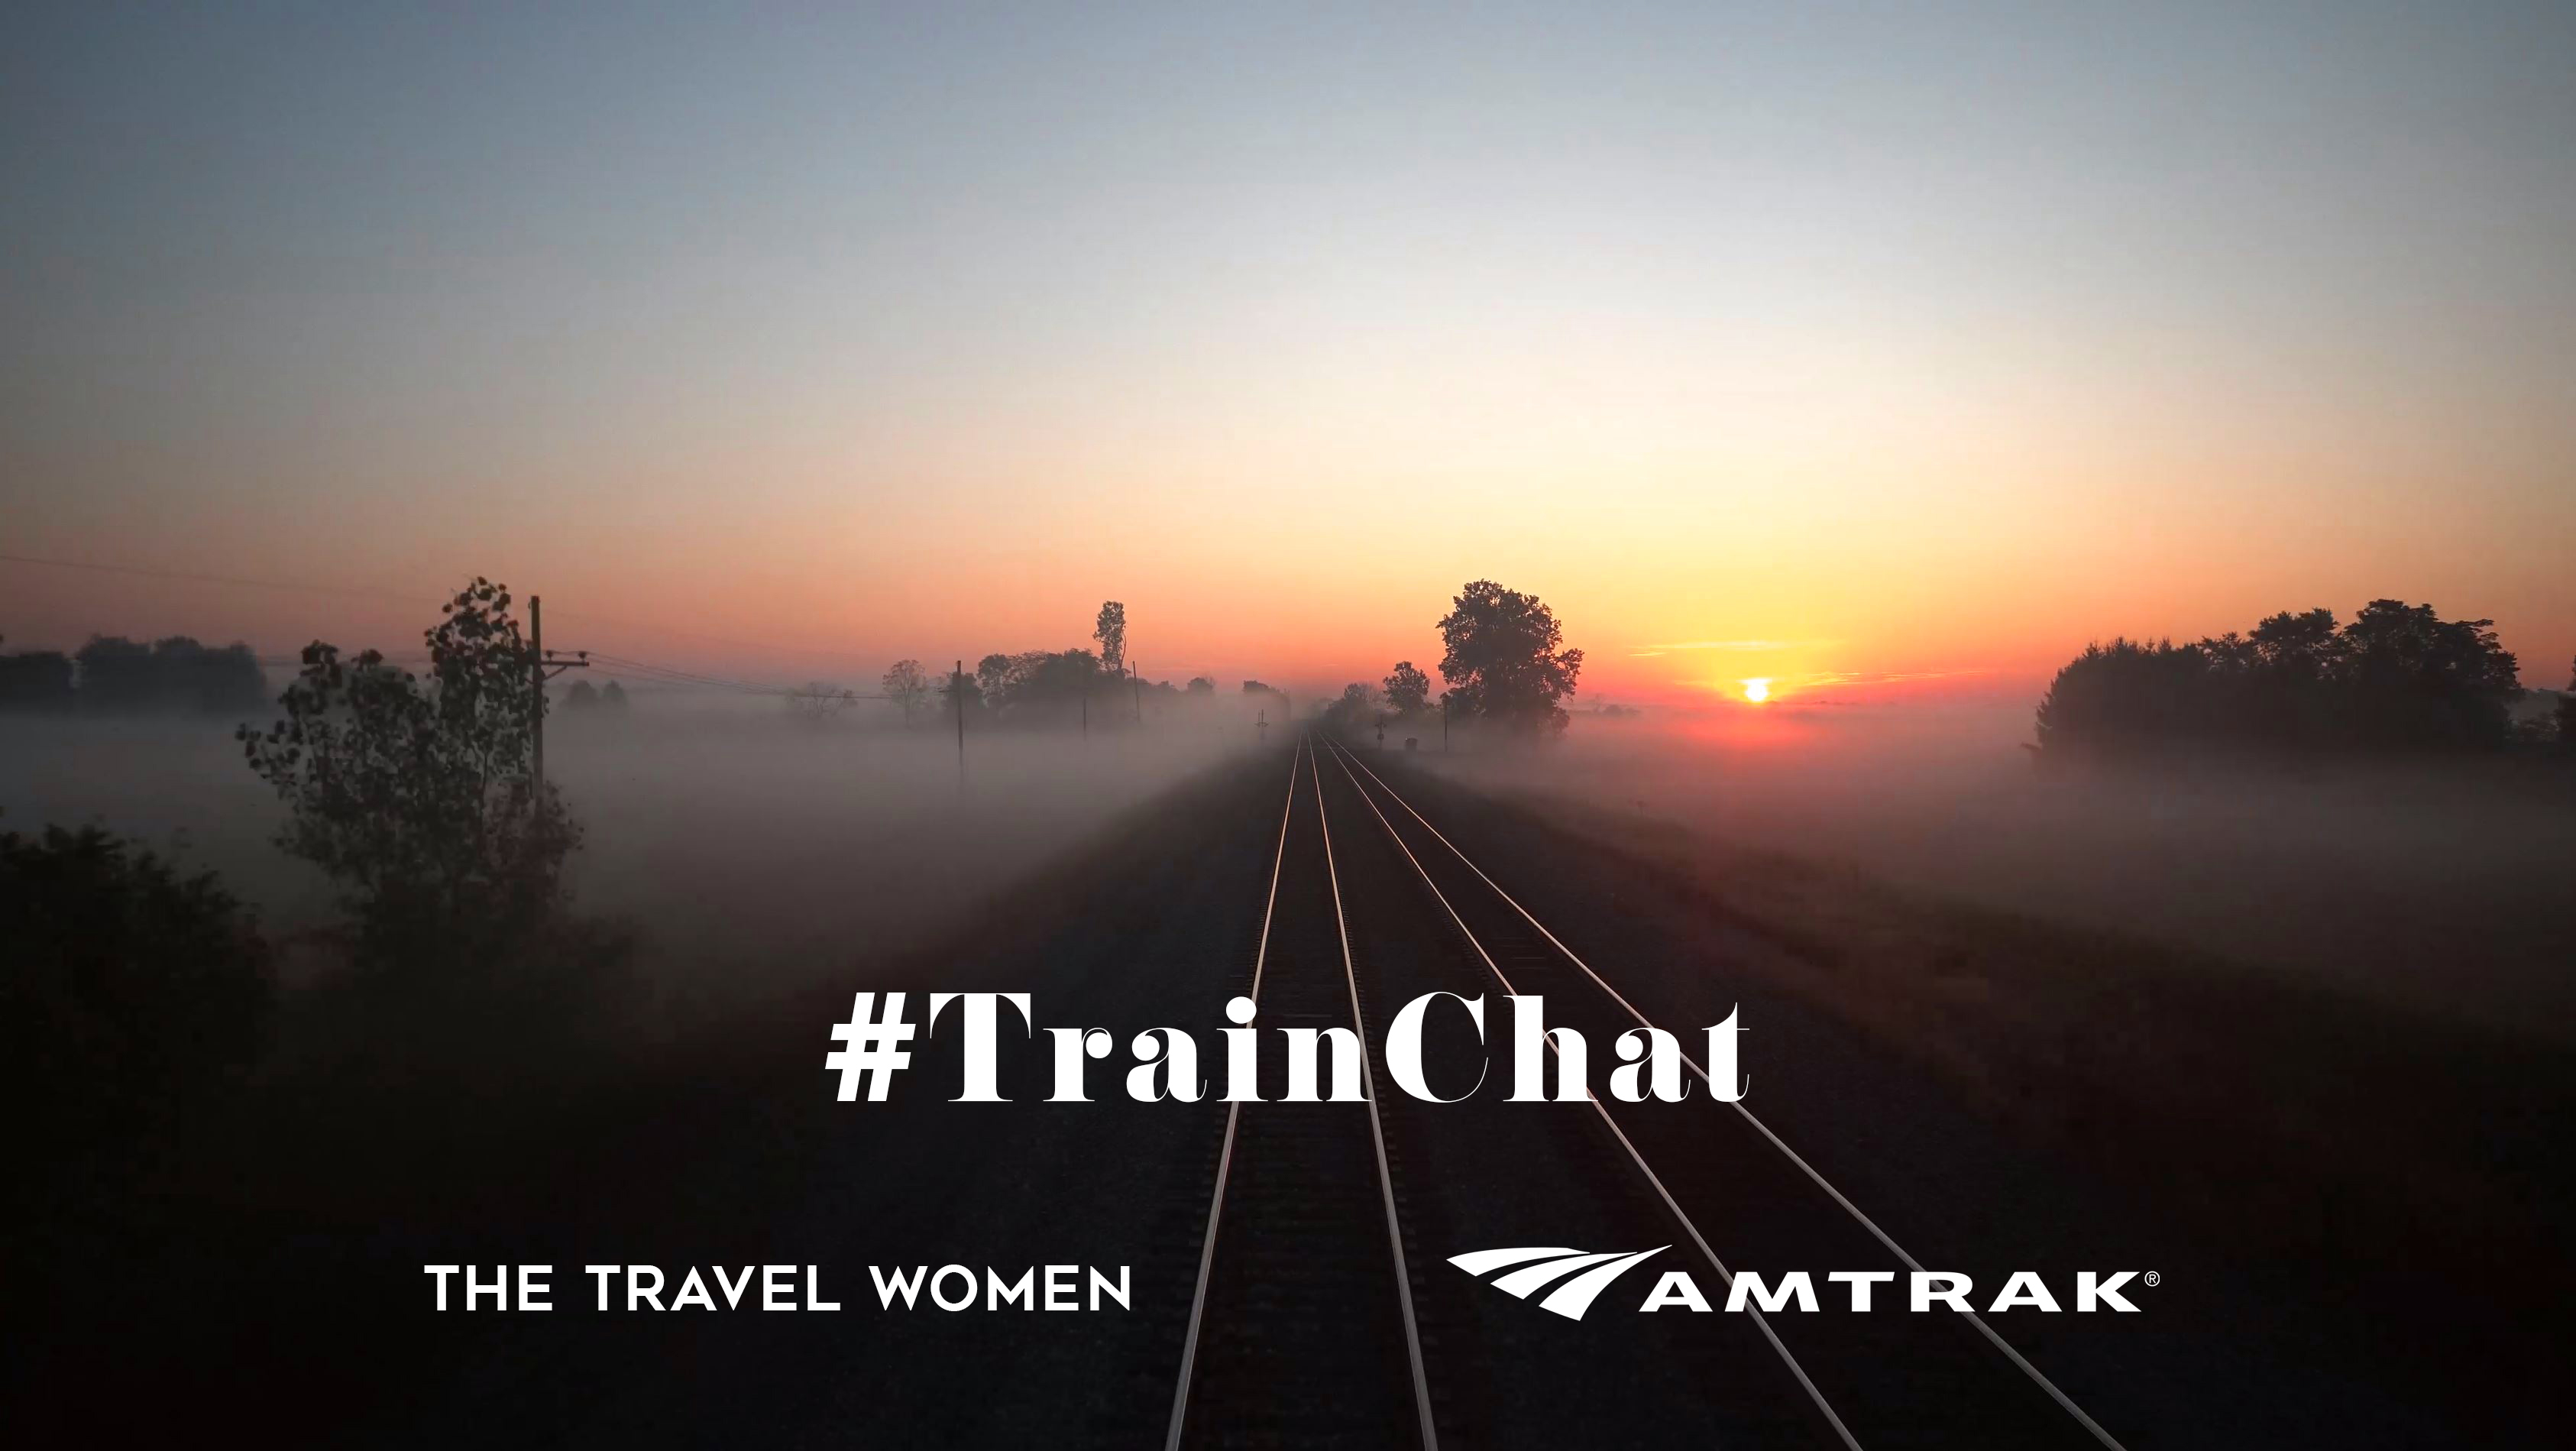 TrainChat with TTW and Amtrak logos over misty morning over train tracks